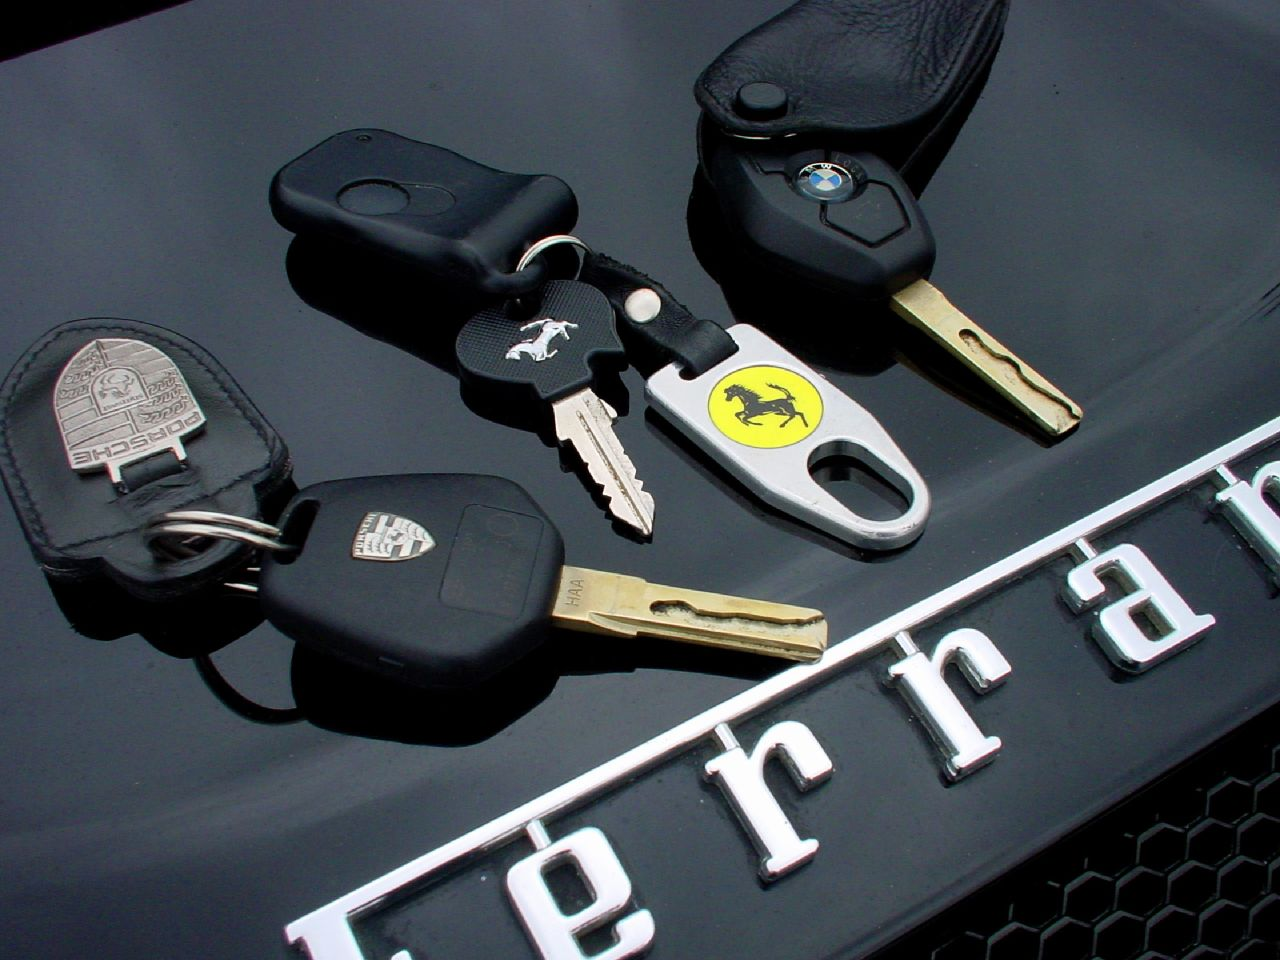 for replacement car keys for the ferrari